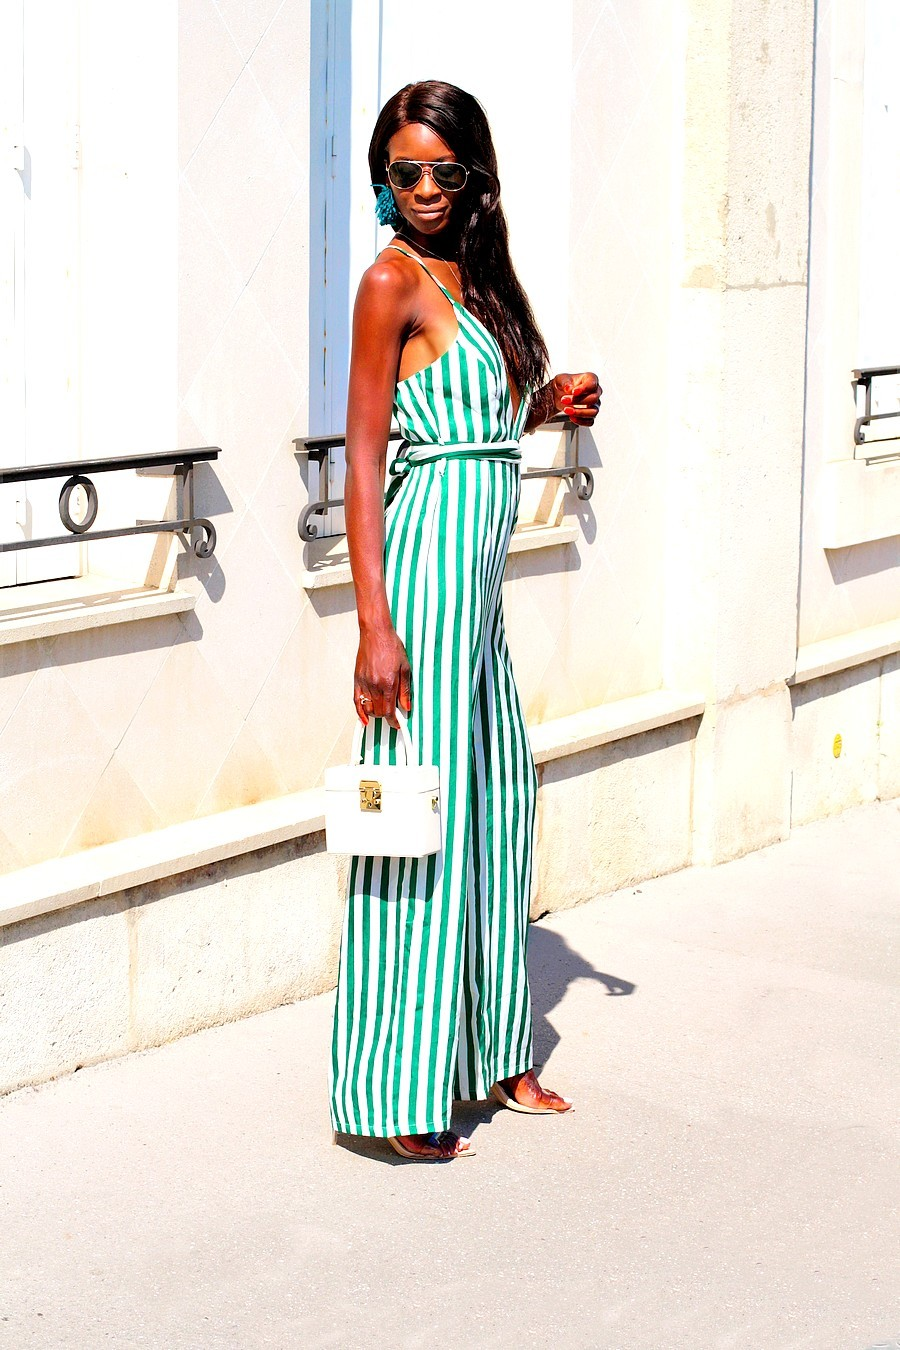 city-girl-chic-trendy-outfit